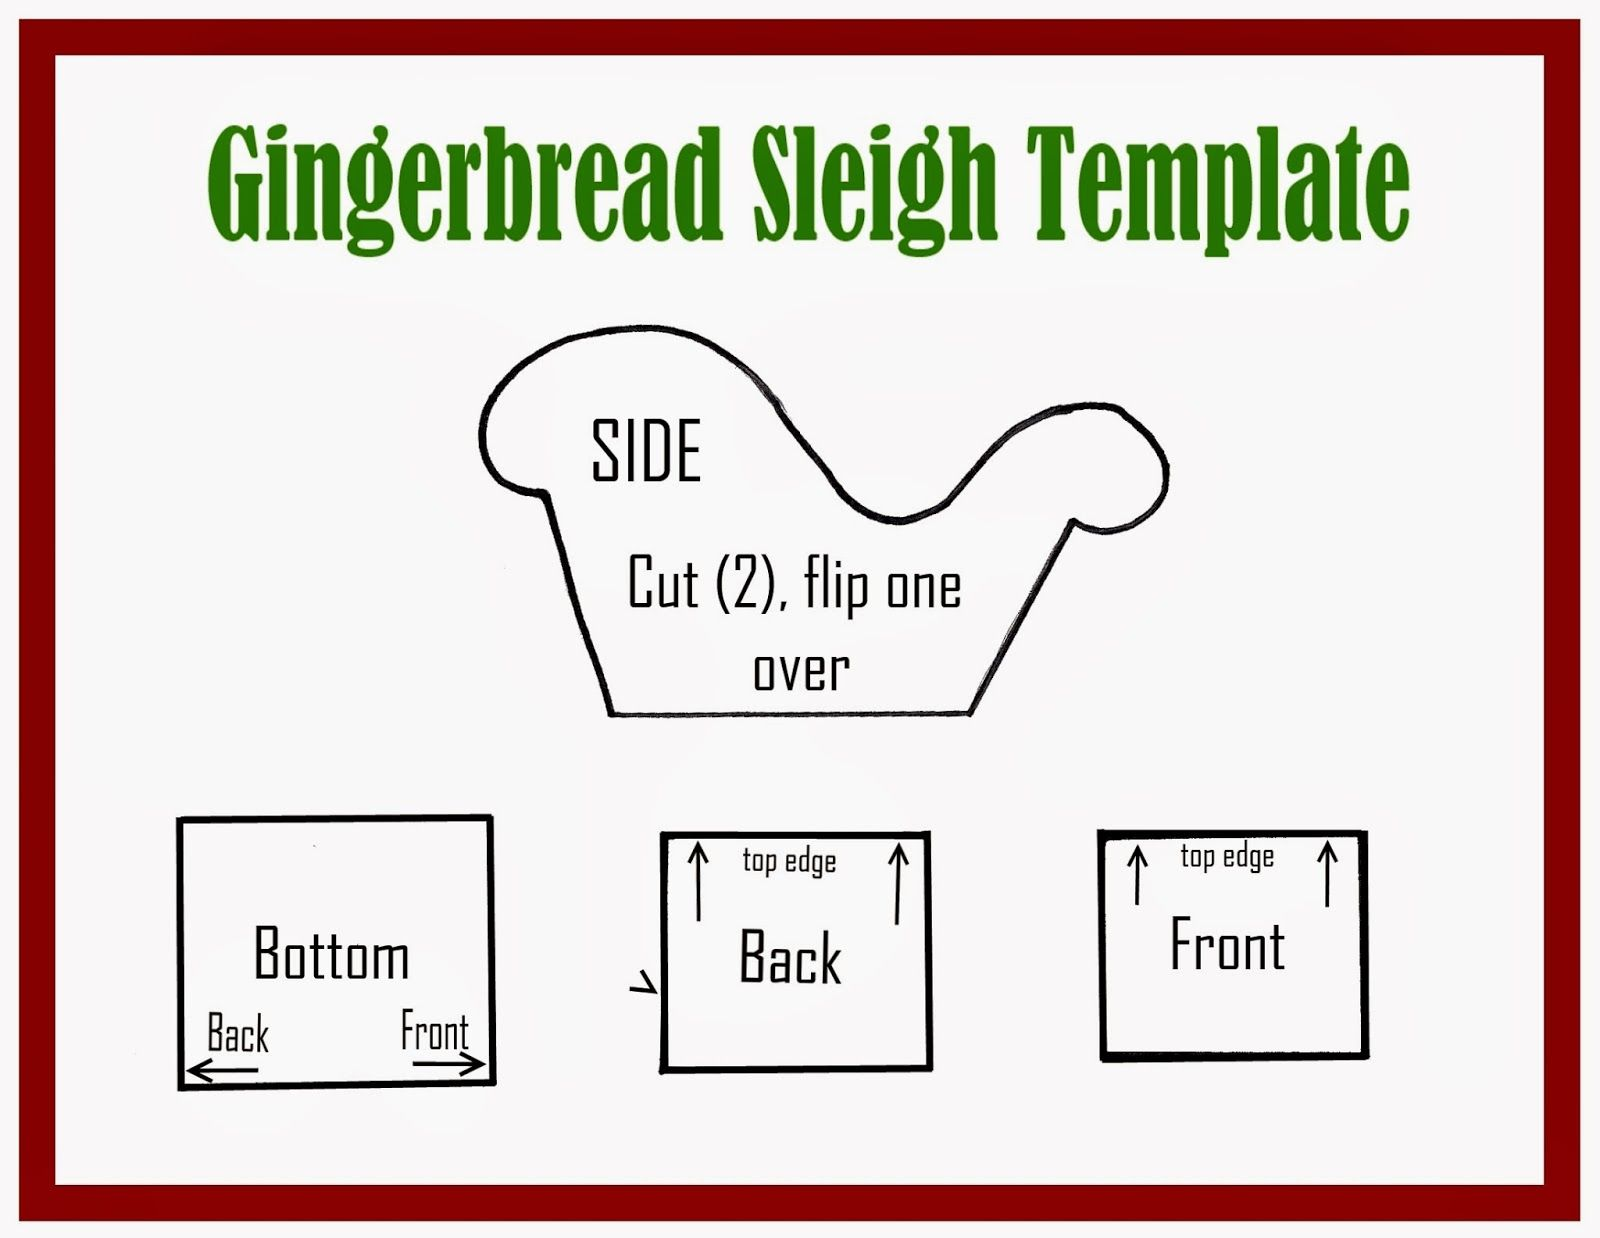 Gingerbread Sleigh Tutorial and Template Gingerbread